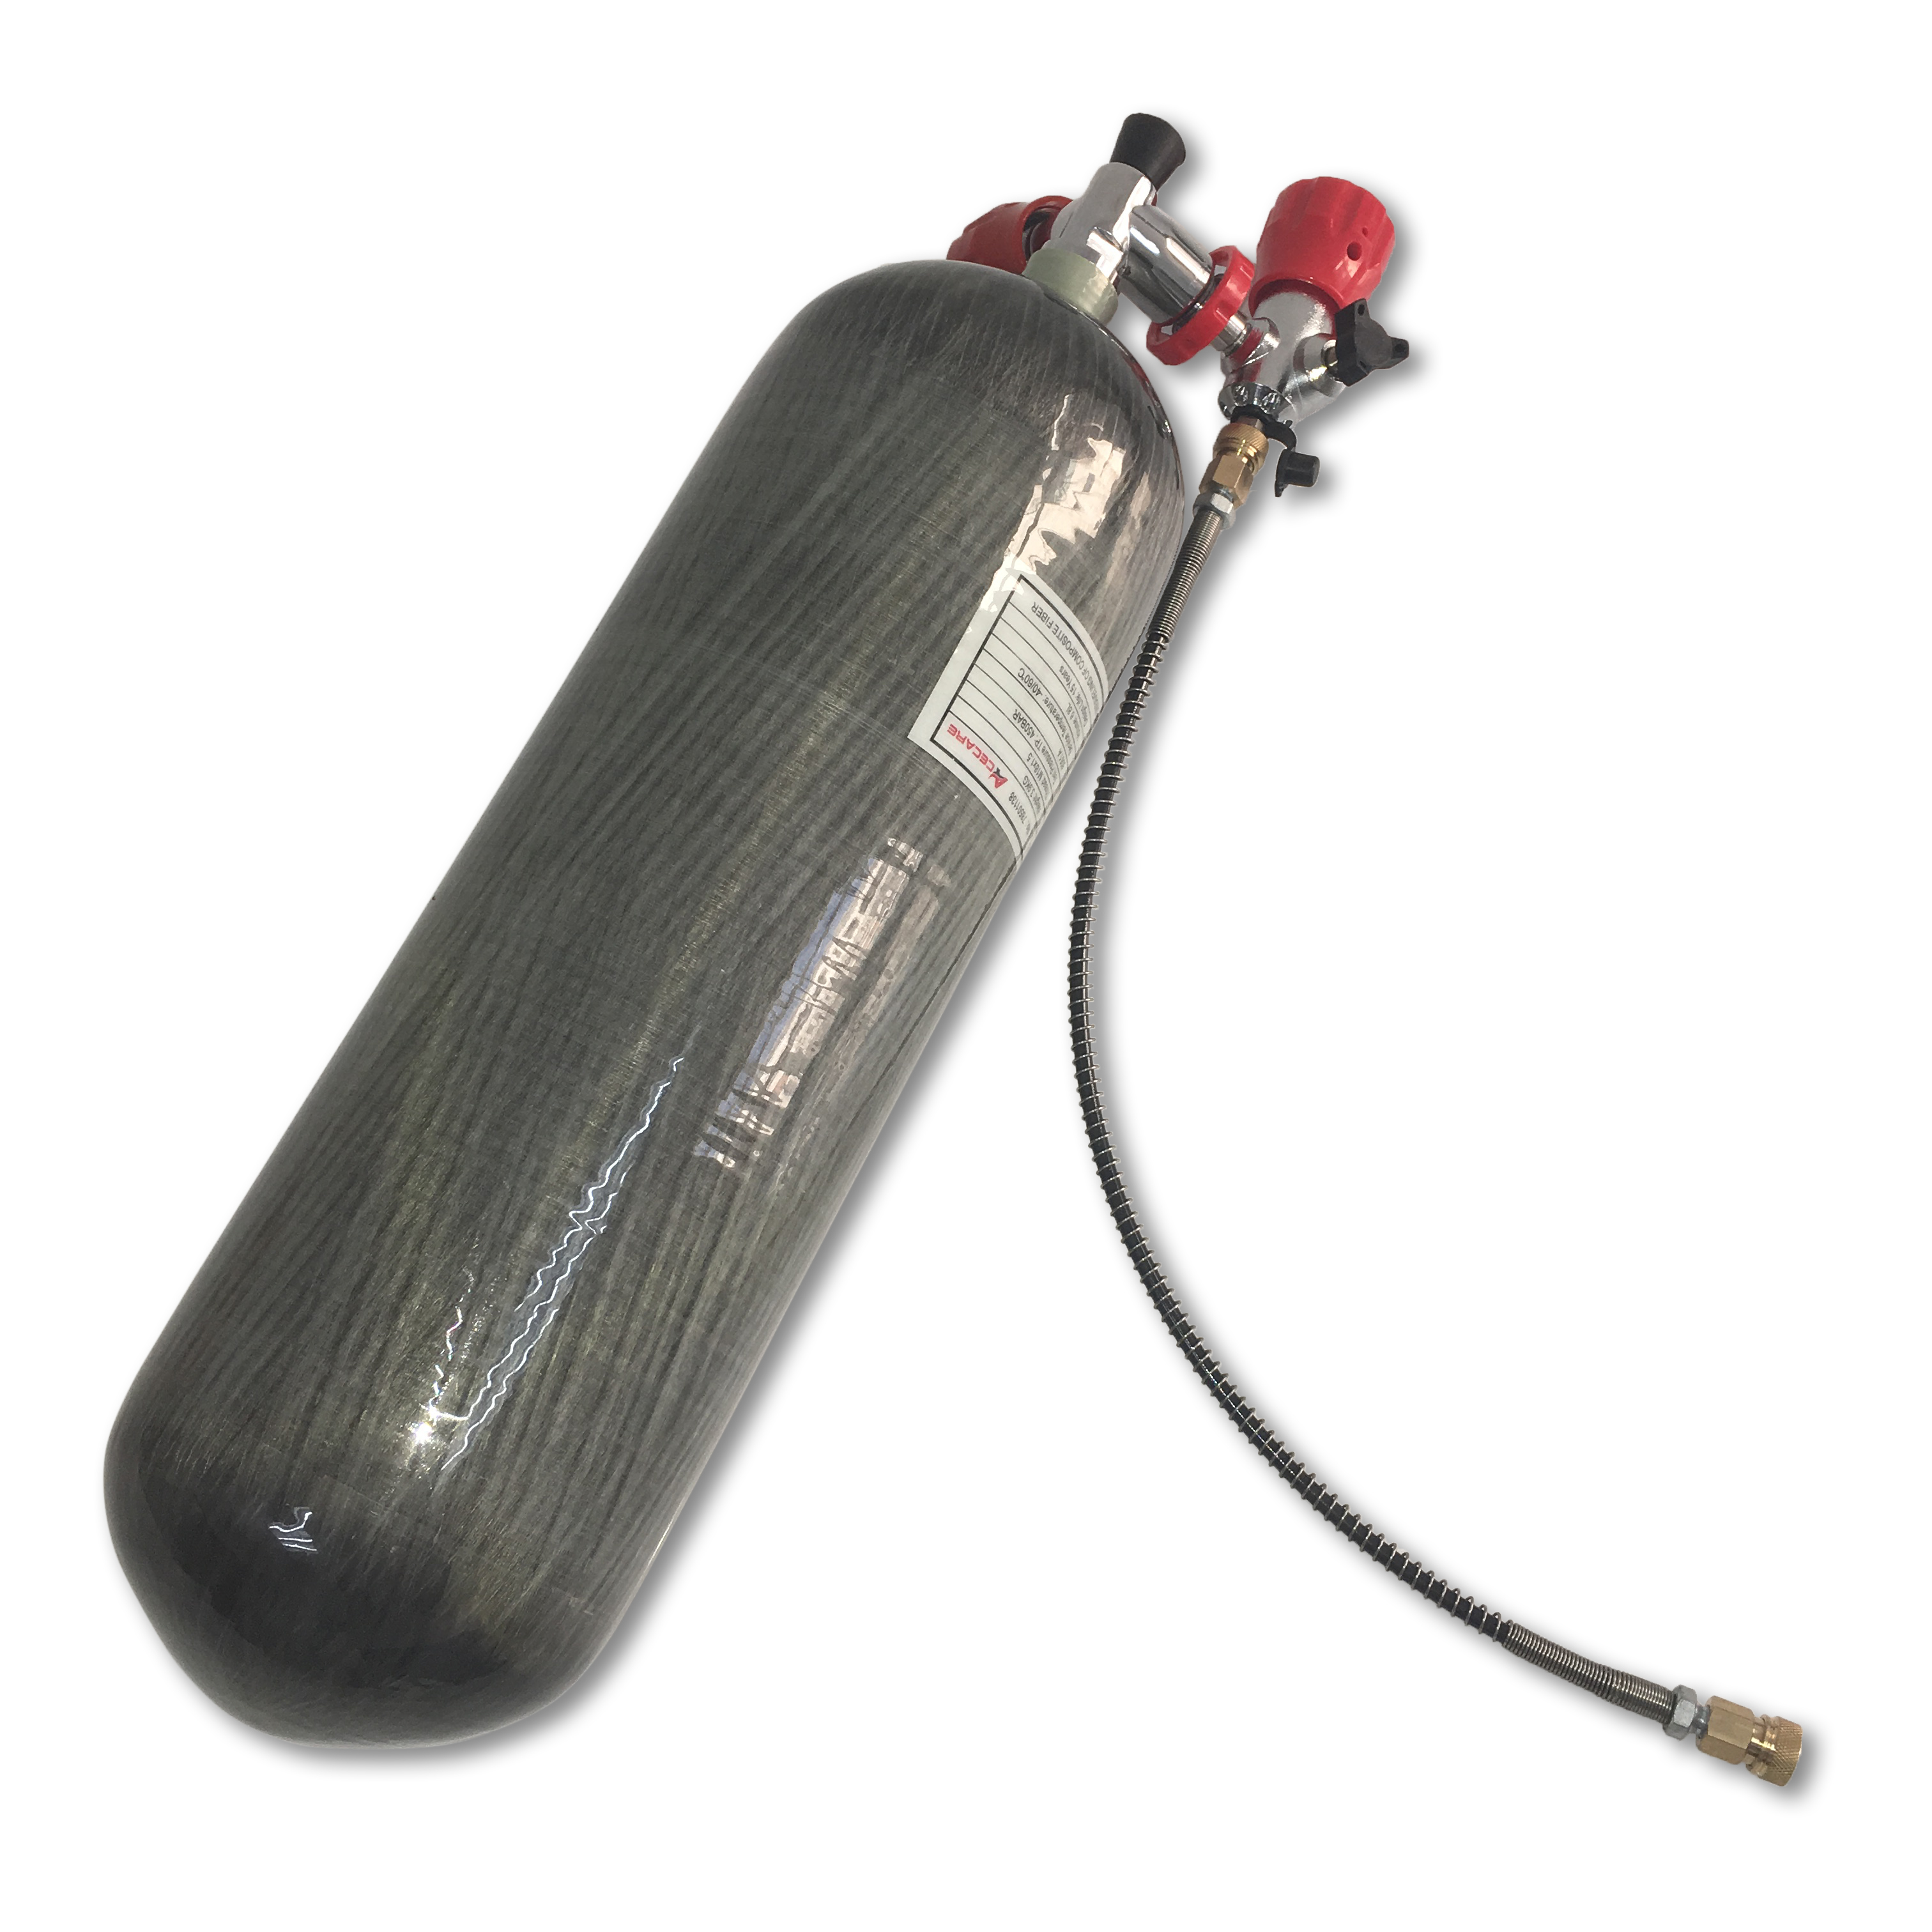 AC168 Pcp Cylinder 6.8L Scuba Tank Air Rifles Airforce Paintball  4500Psi &Station Filling Pcp Airforce Condor Bottles Pcp